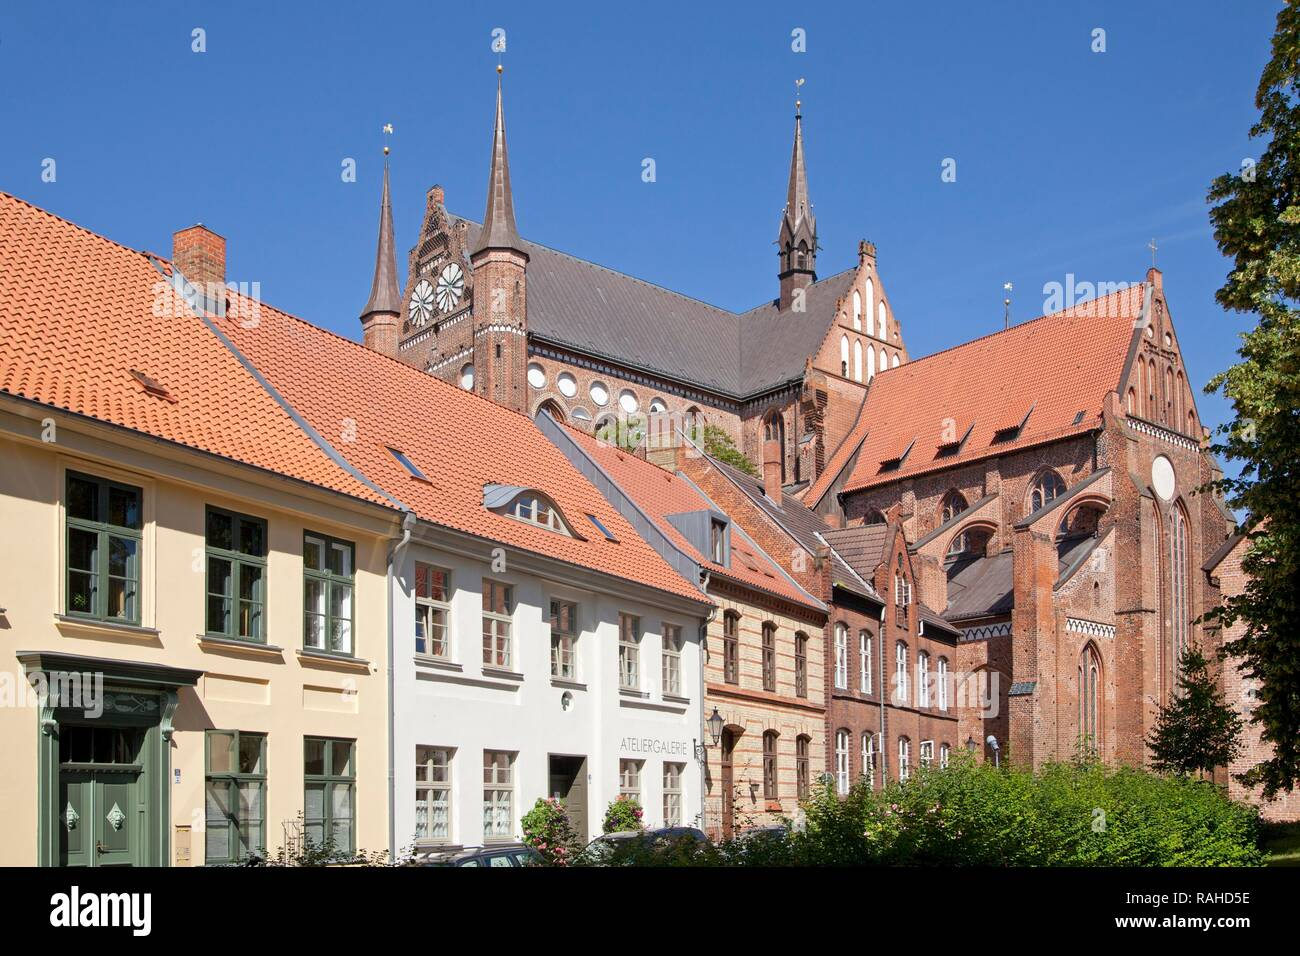 Georgen Church, Wismar, Mecklenburg-Western Pomerania - Stock Image